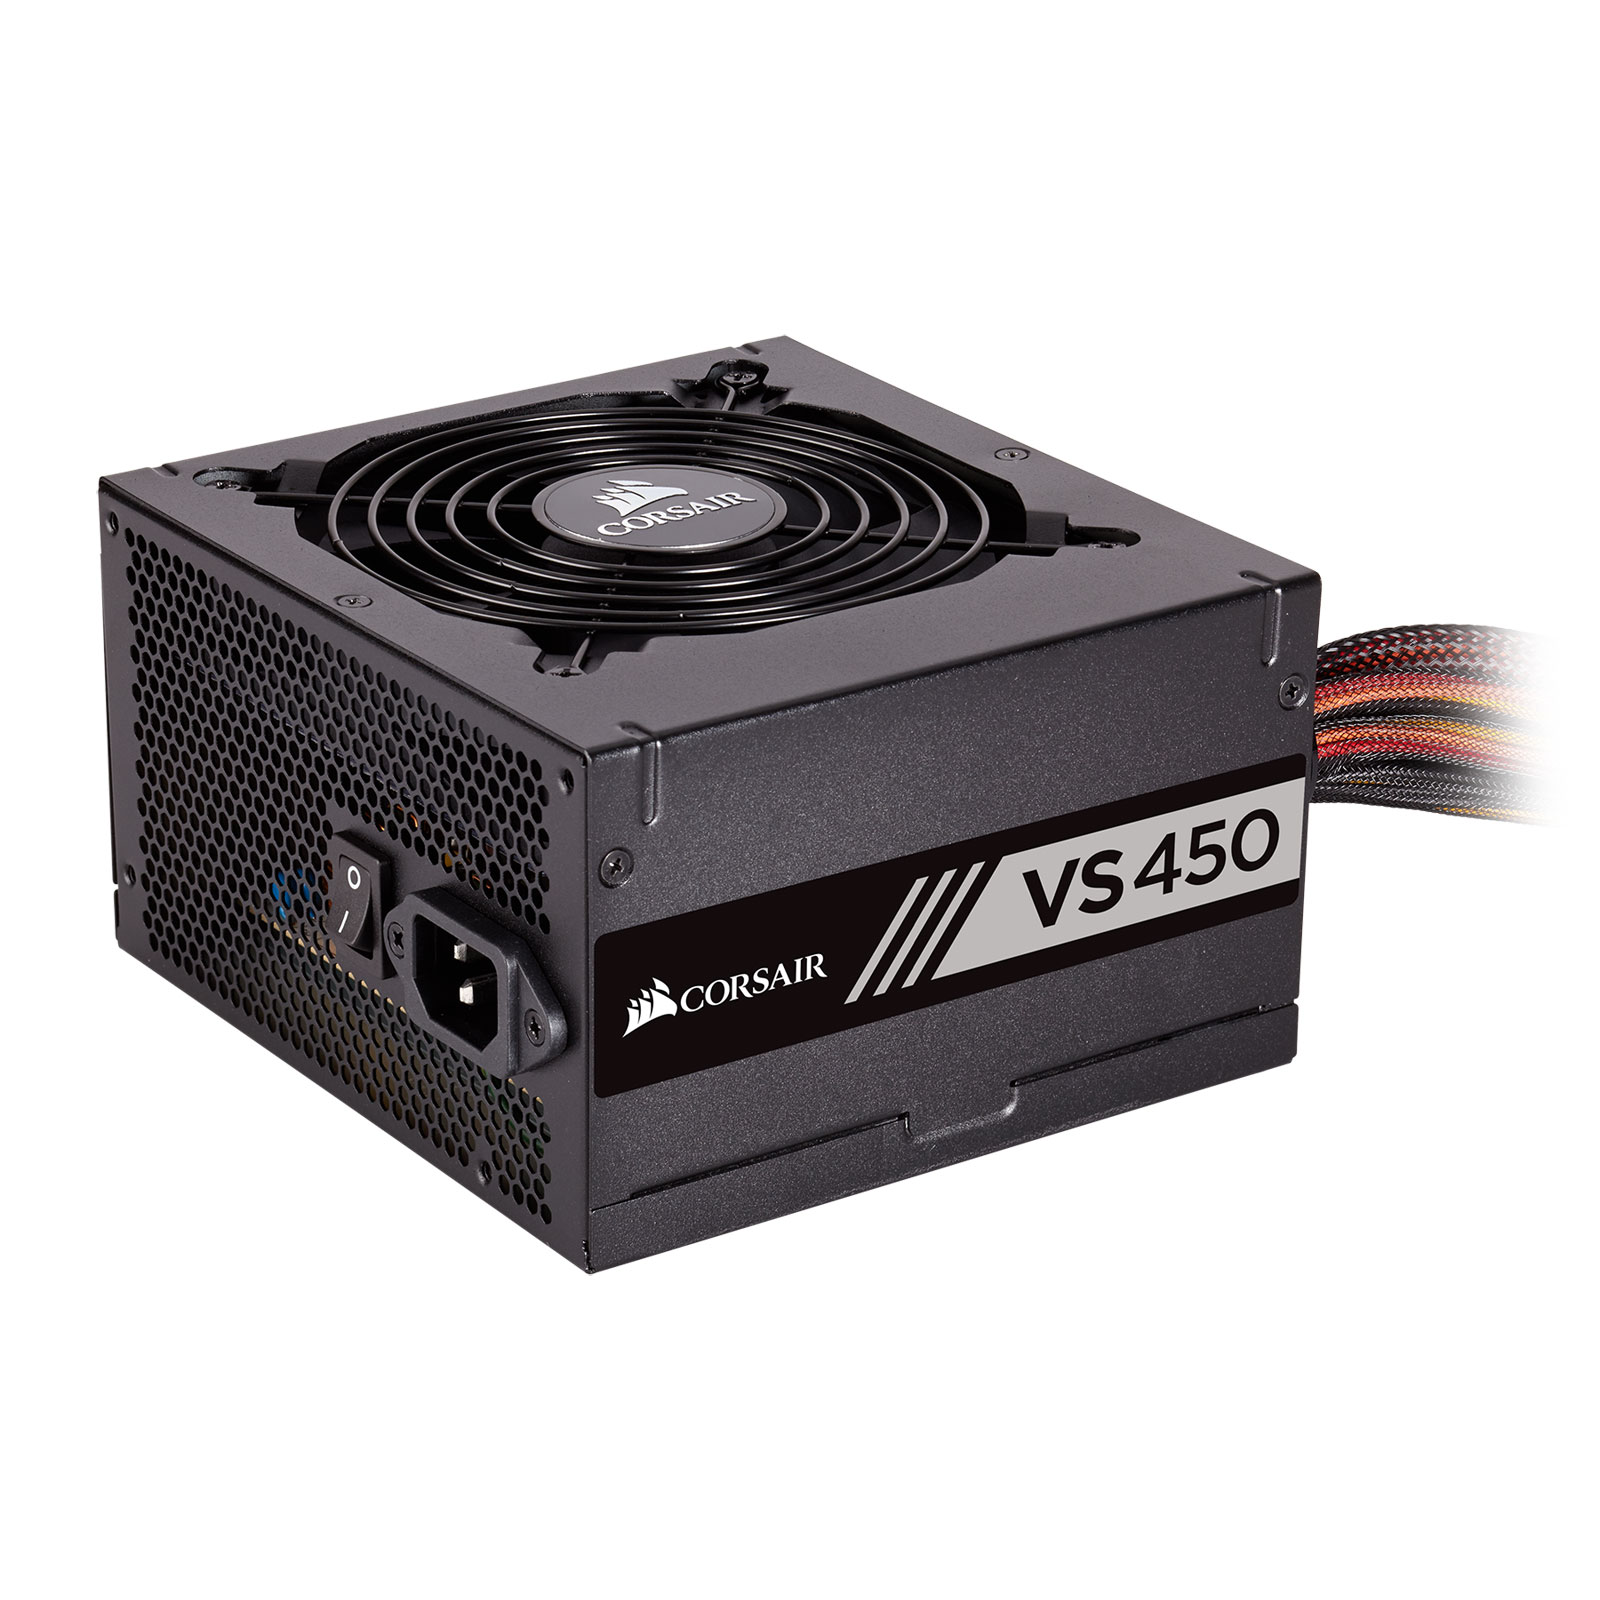 Alimentation PC Corsair Builder Series VS450 80PLUS V2 Alimentation 450W ATX 12V 2.31 (Garantie 3 ans par Corsair)